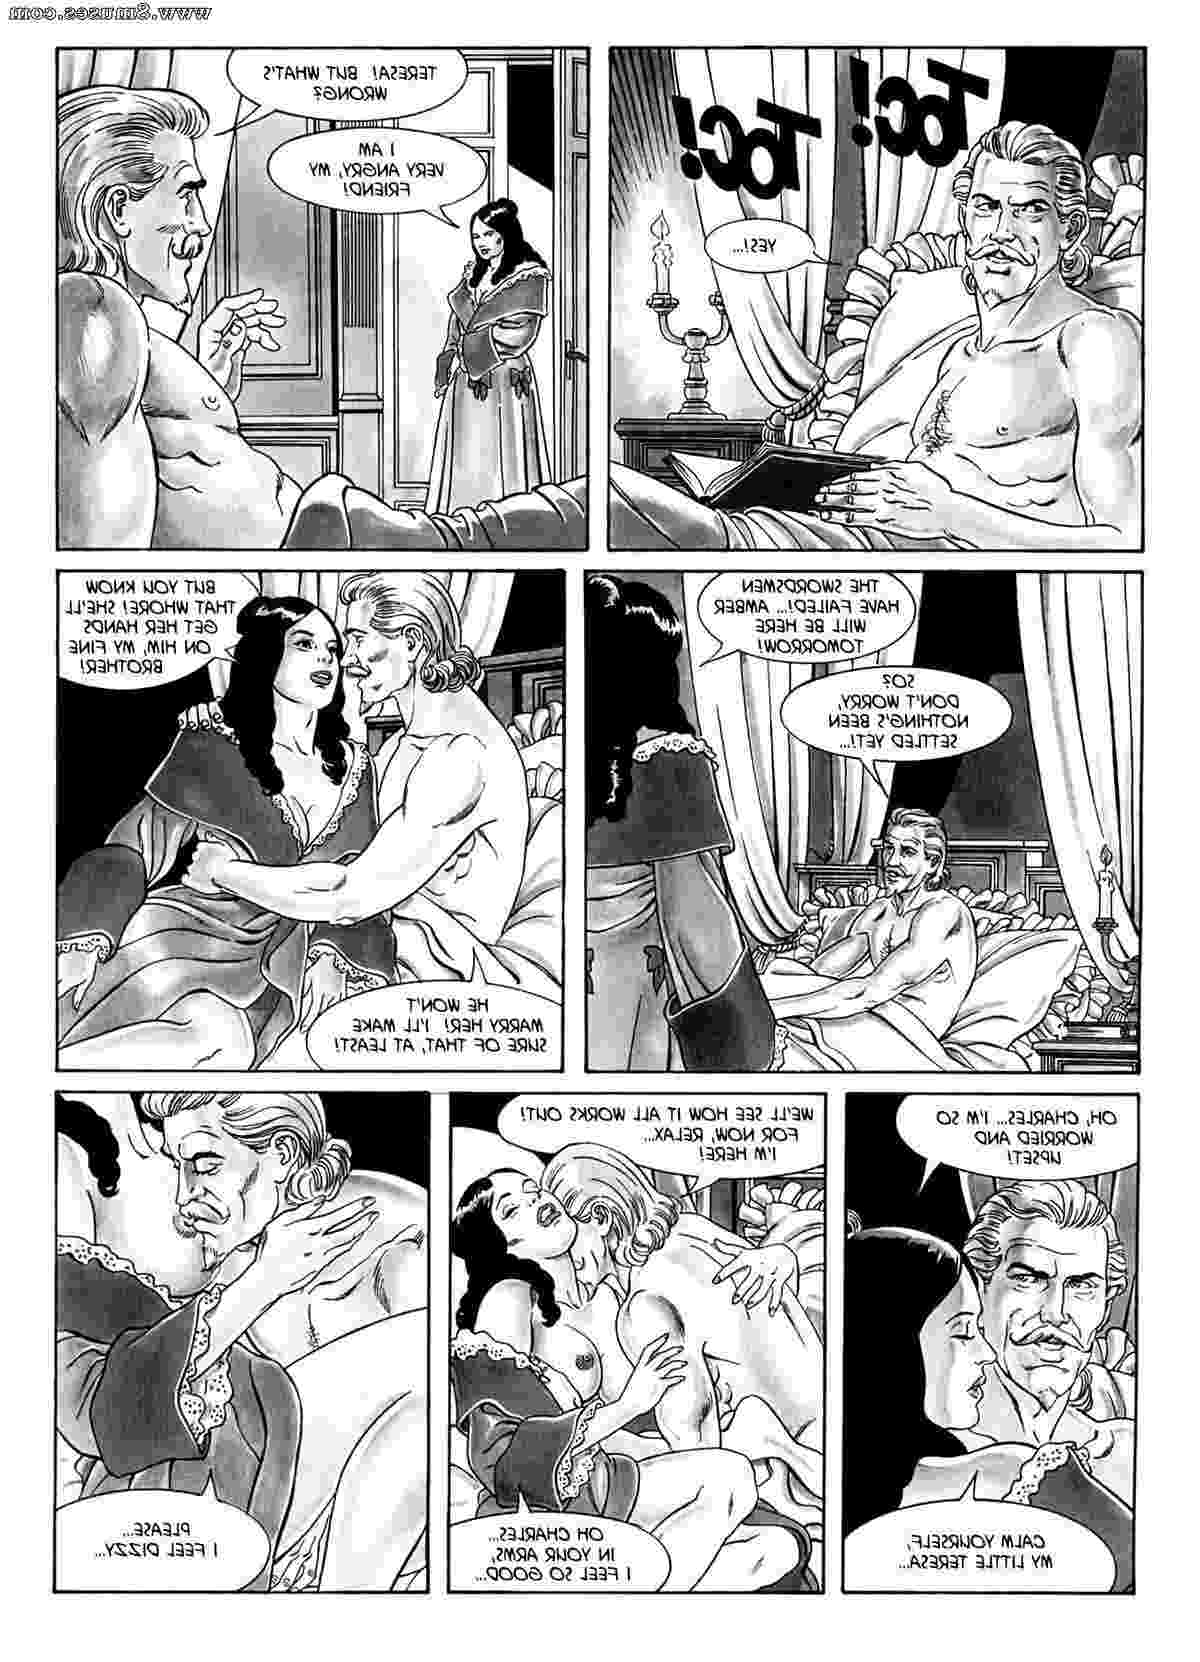 Stramaglia-Morale-Comics/Impetuous-Amber Impetuous_Amber__8muses_-_Sex_and_Porn_Comics_24.jpg